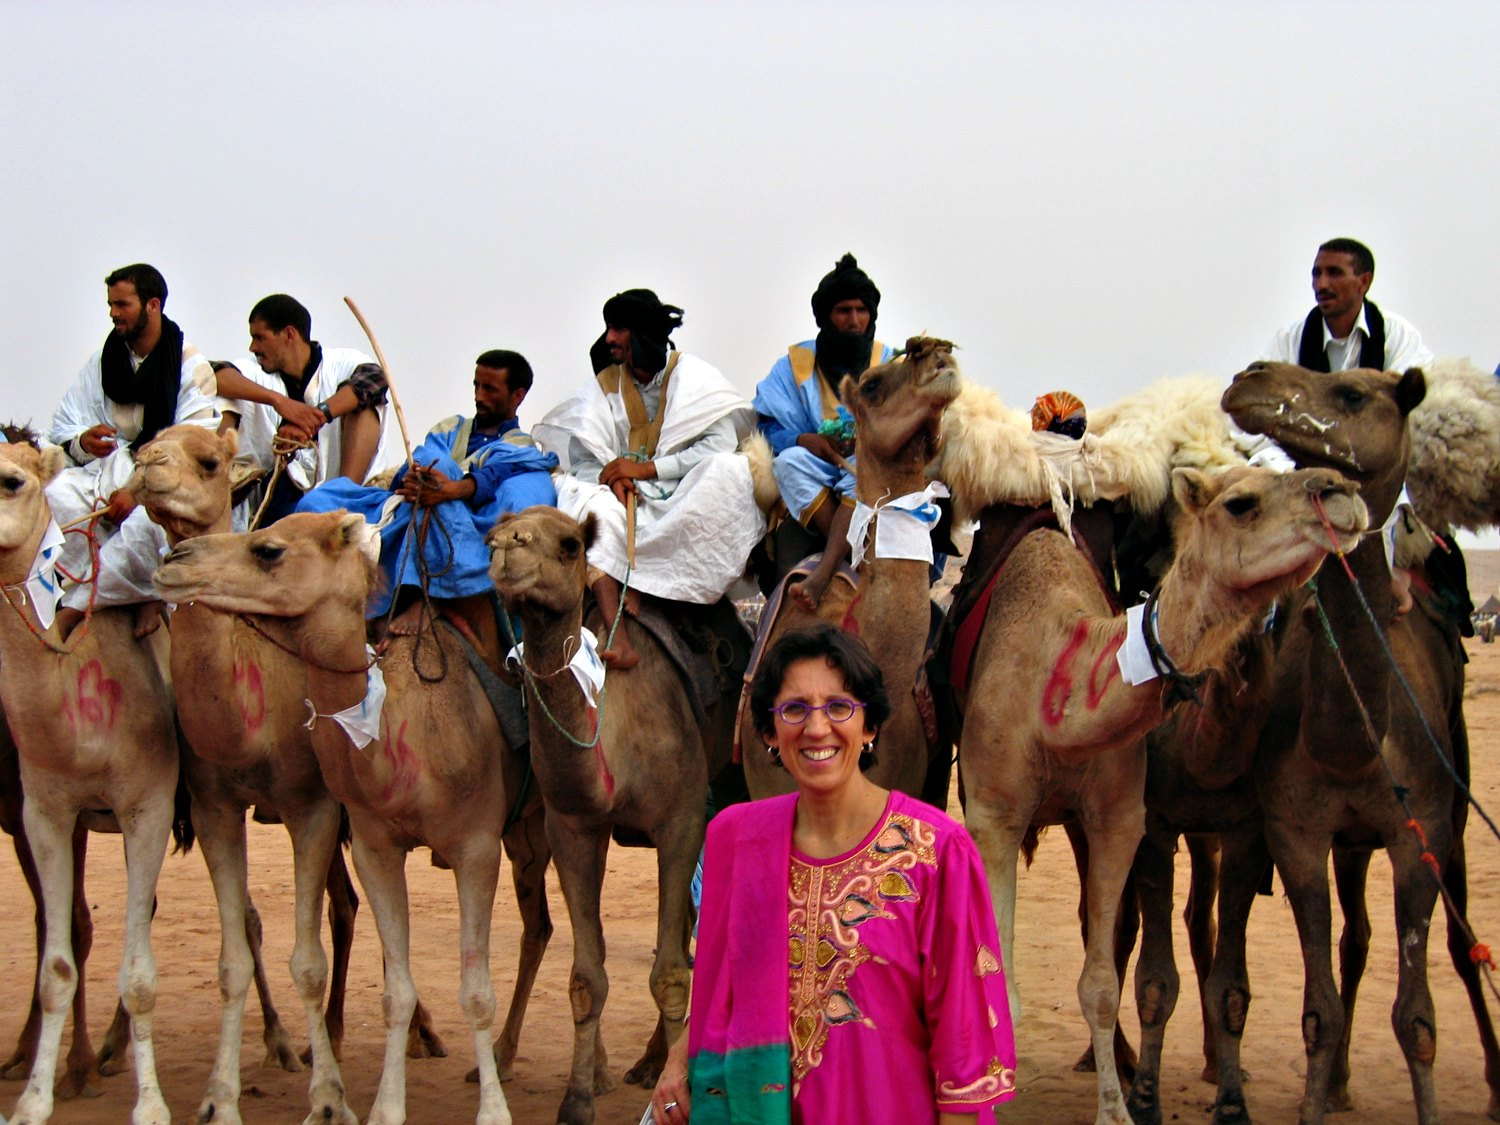 Cécile Duvelle participating in the Moussem of Tan-Tan, an annual gathering of nomadic peoples of the Sahara in southwest morocco.